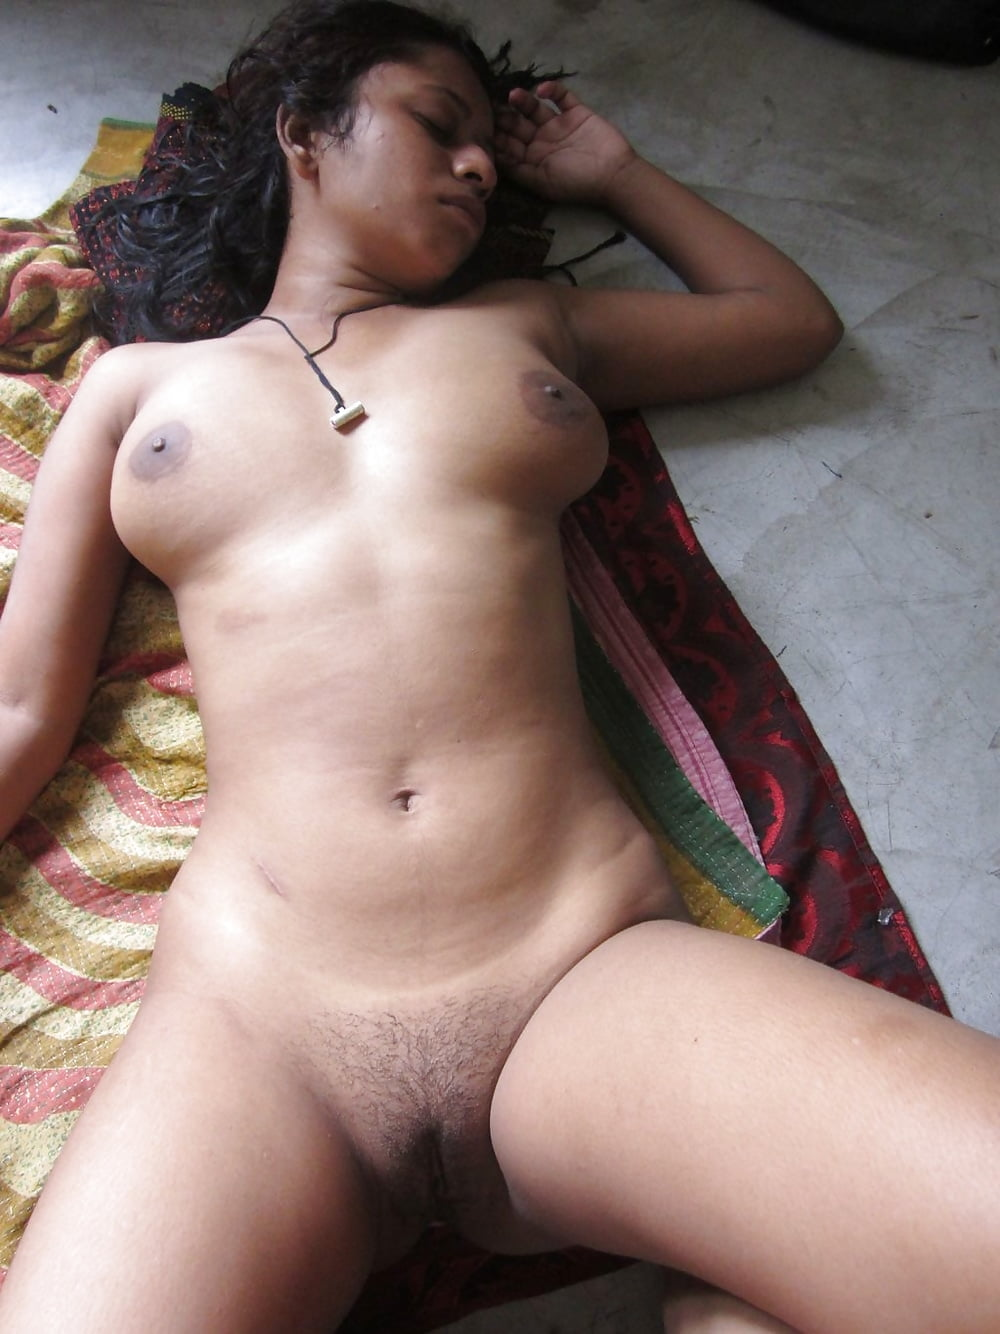 Sri lankan school fucking girls new photos — 15